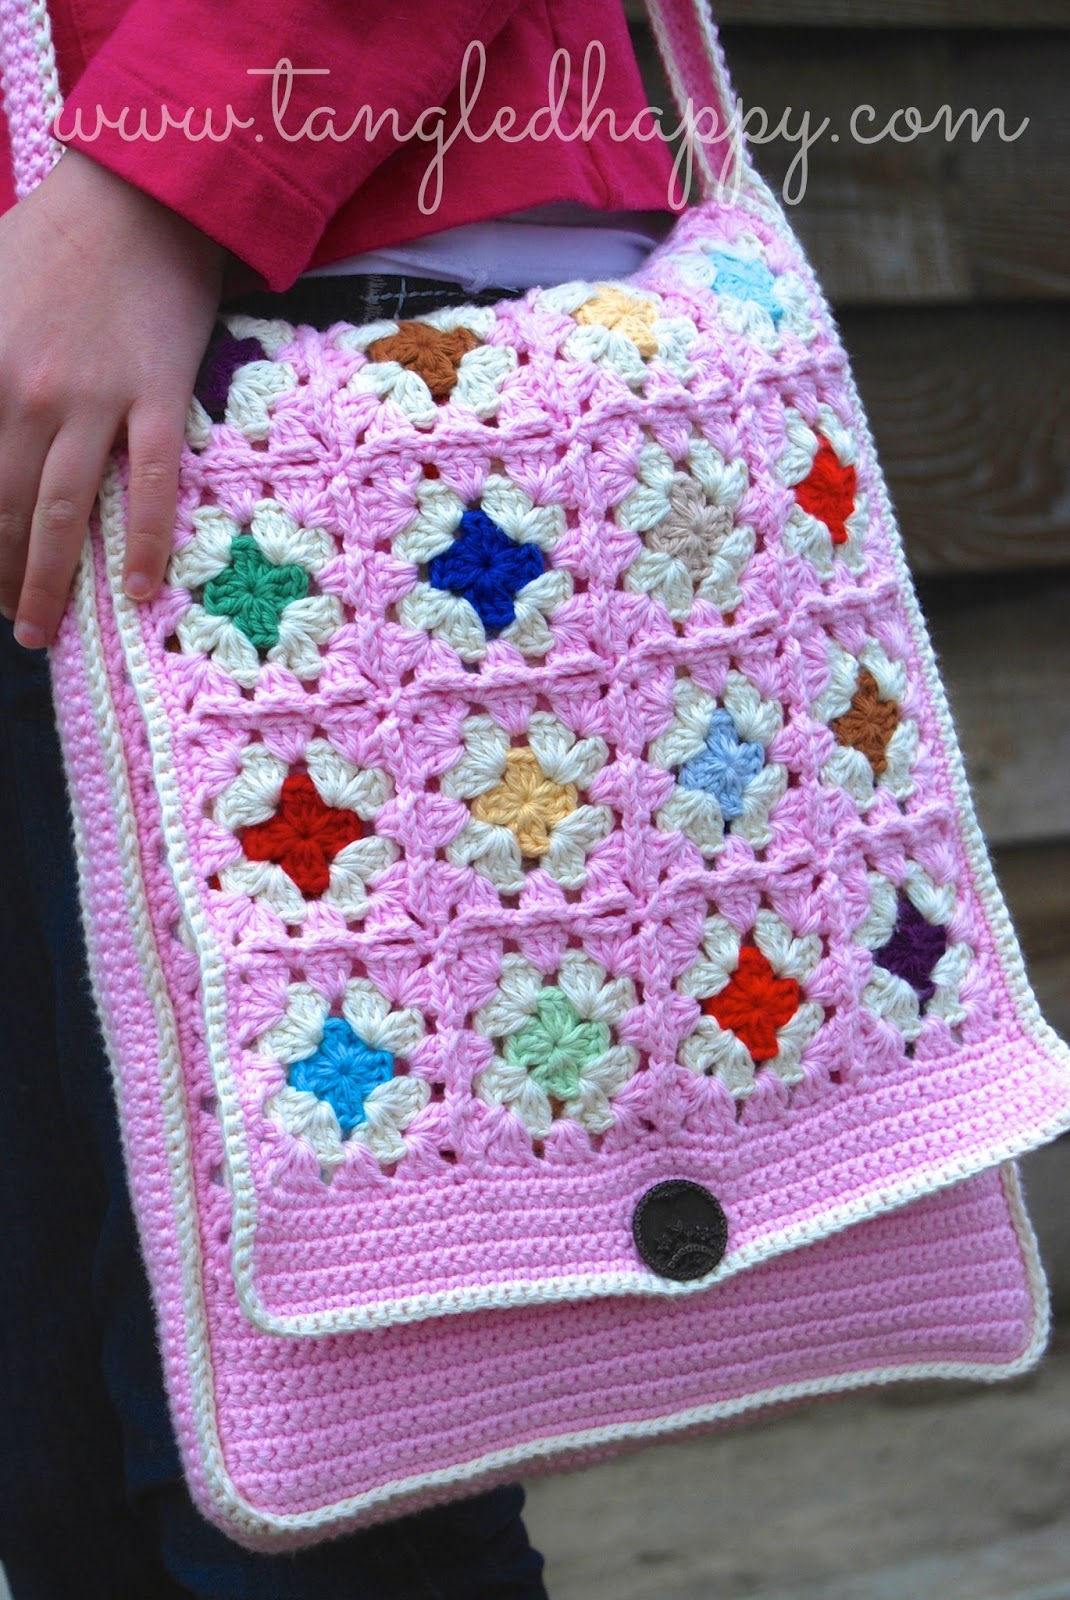 Crochet Crossbody Bag Pattern : tangled happy: Grannys Messenger Bag {Free Crochet Pattern}